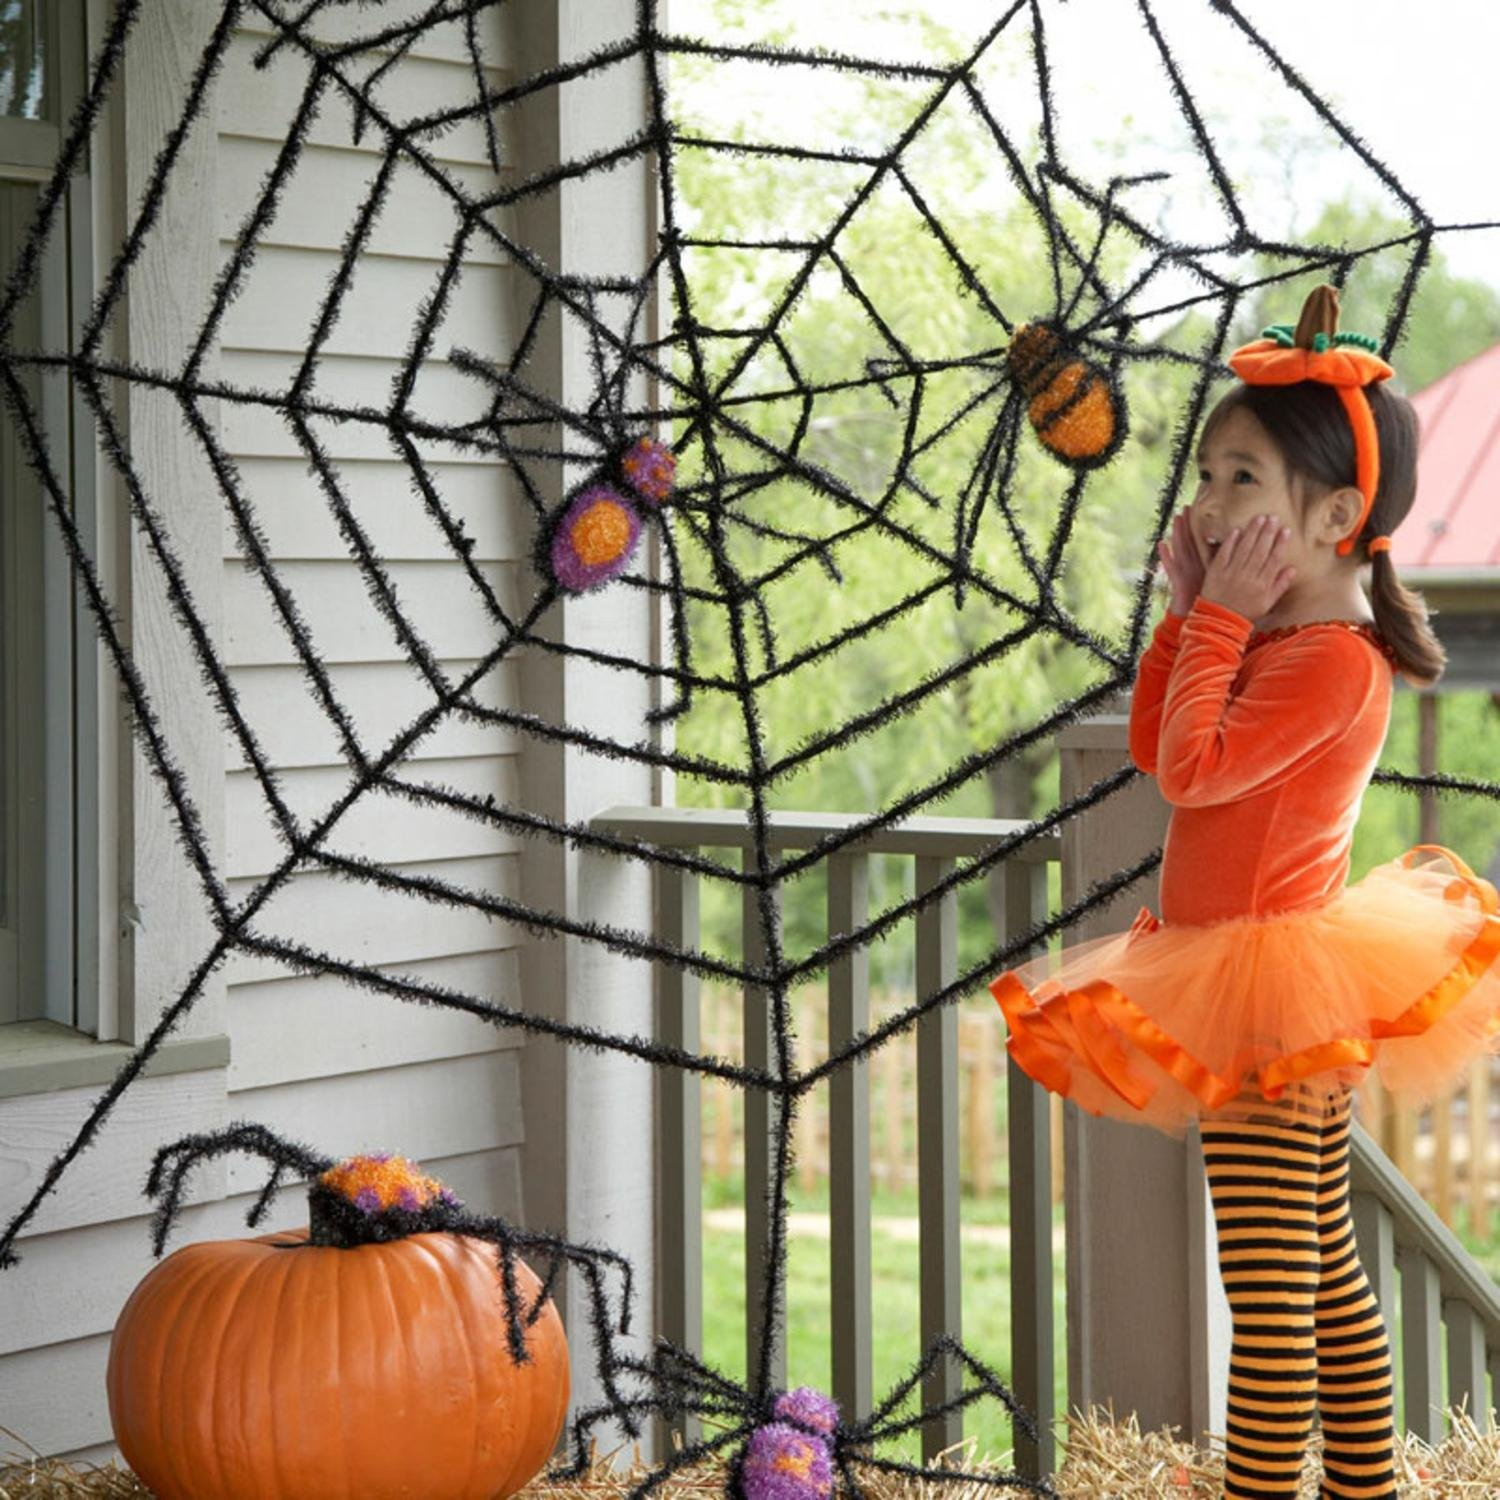 amazoncom giant spider web and giant spiders halloween decoration patio lawn garden - Halloween Spider Web Decorations